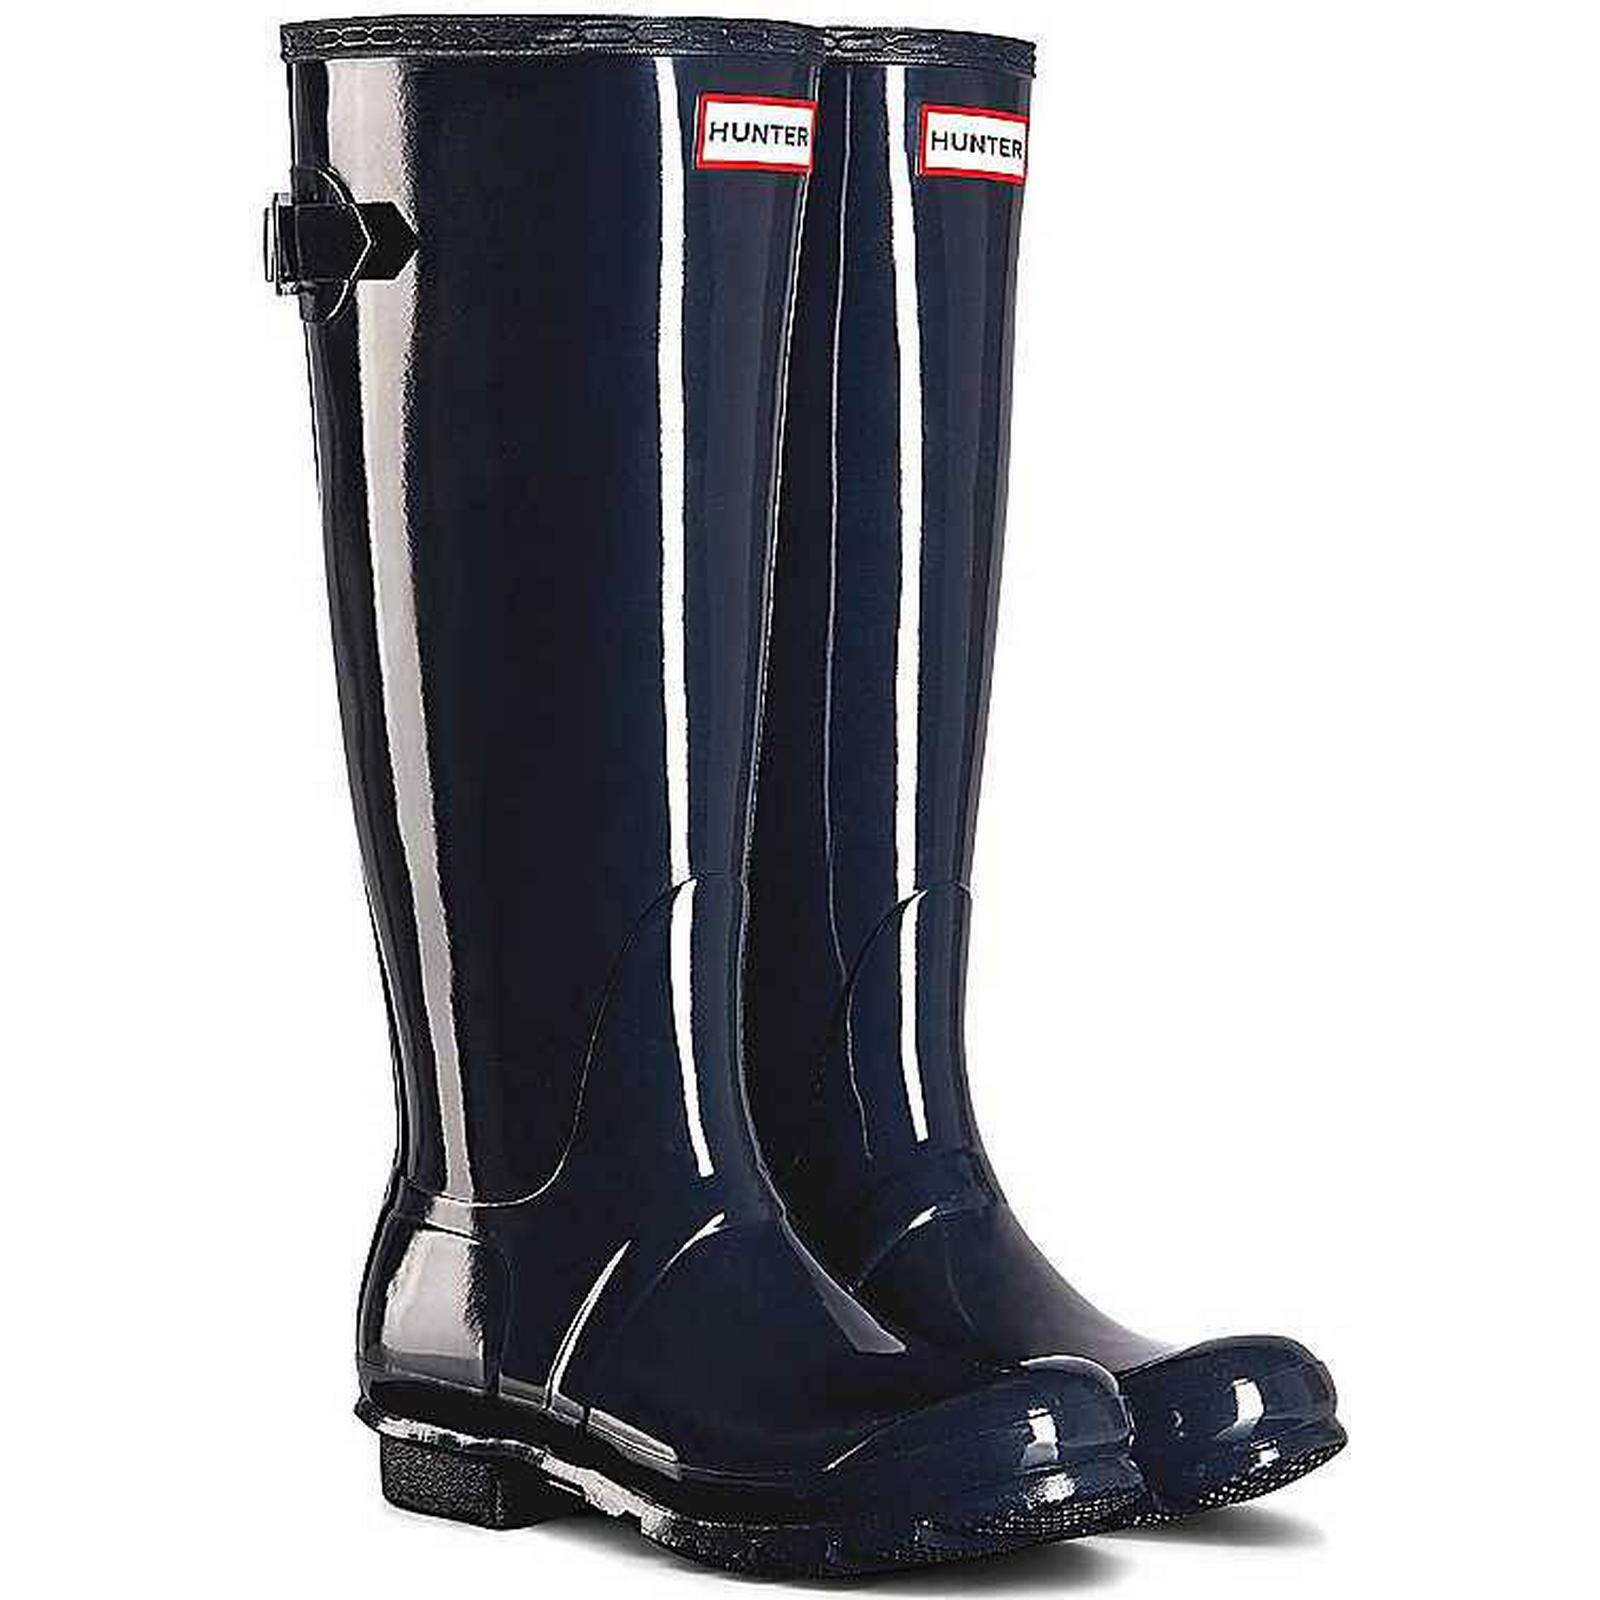 Hunter Gloss Original Tall Adjustable Gloss Hunter Wellies by Hunter:Gentleman/Lady:Grateful feedback ae12b0